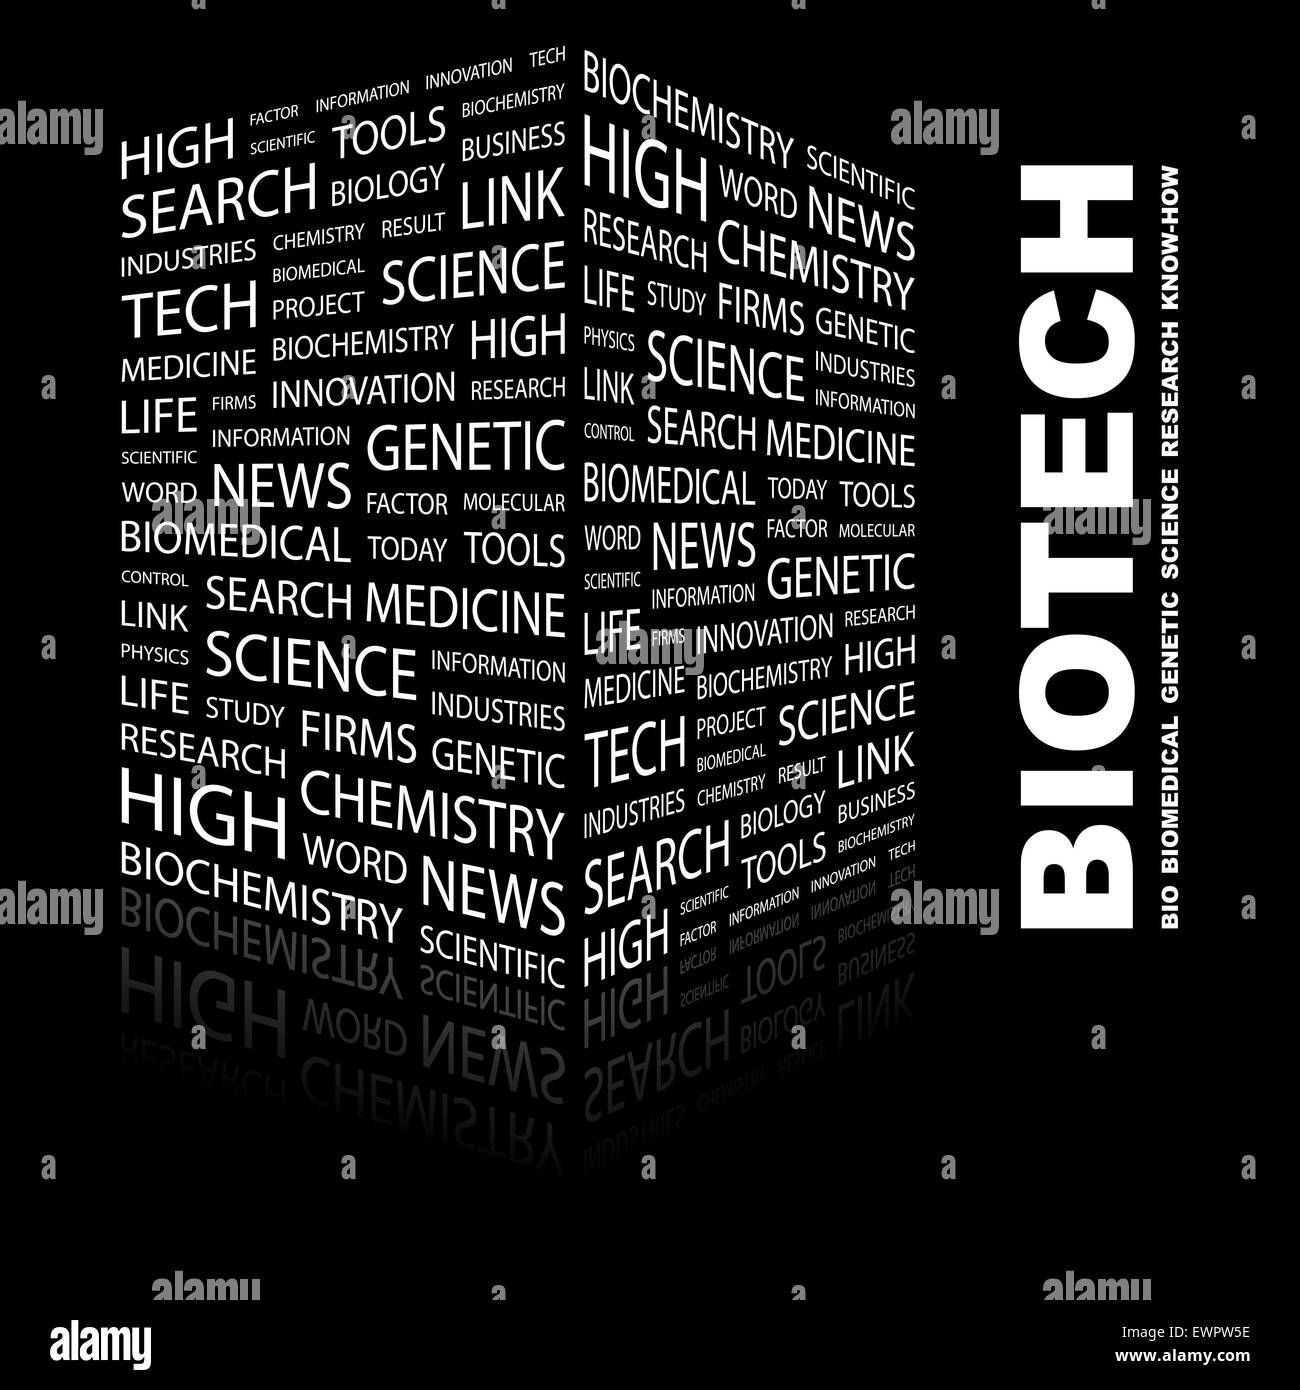 BIOTECH. Word cloud concept illustration. Wordcloud collage. - Stock Vector